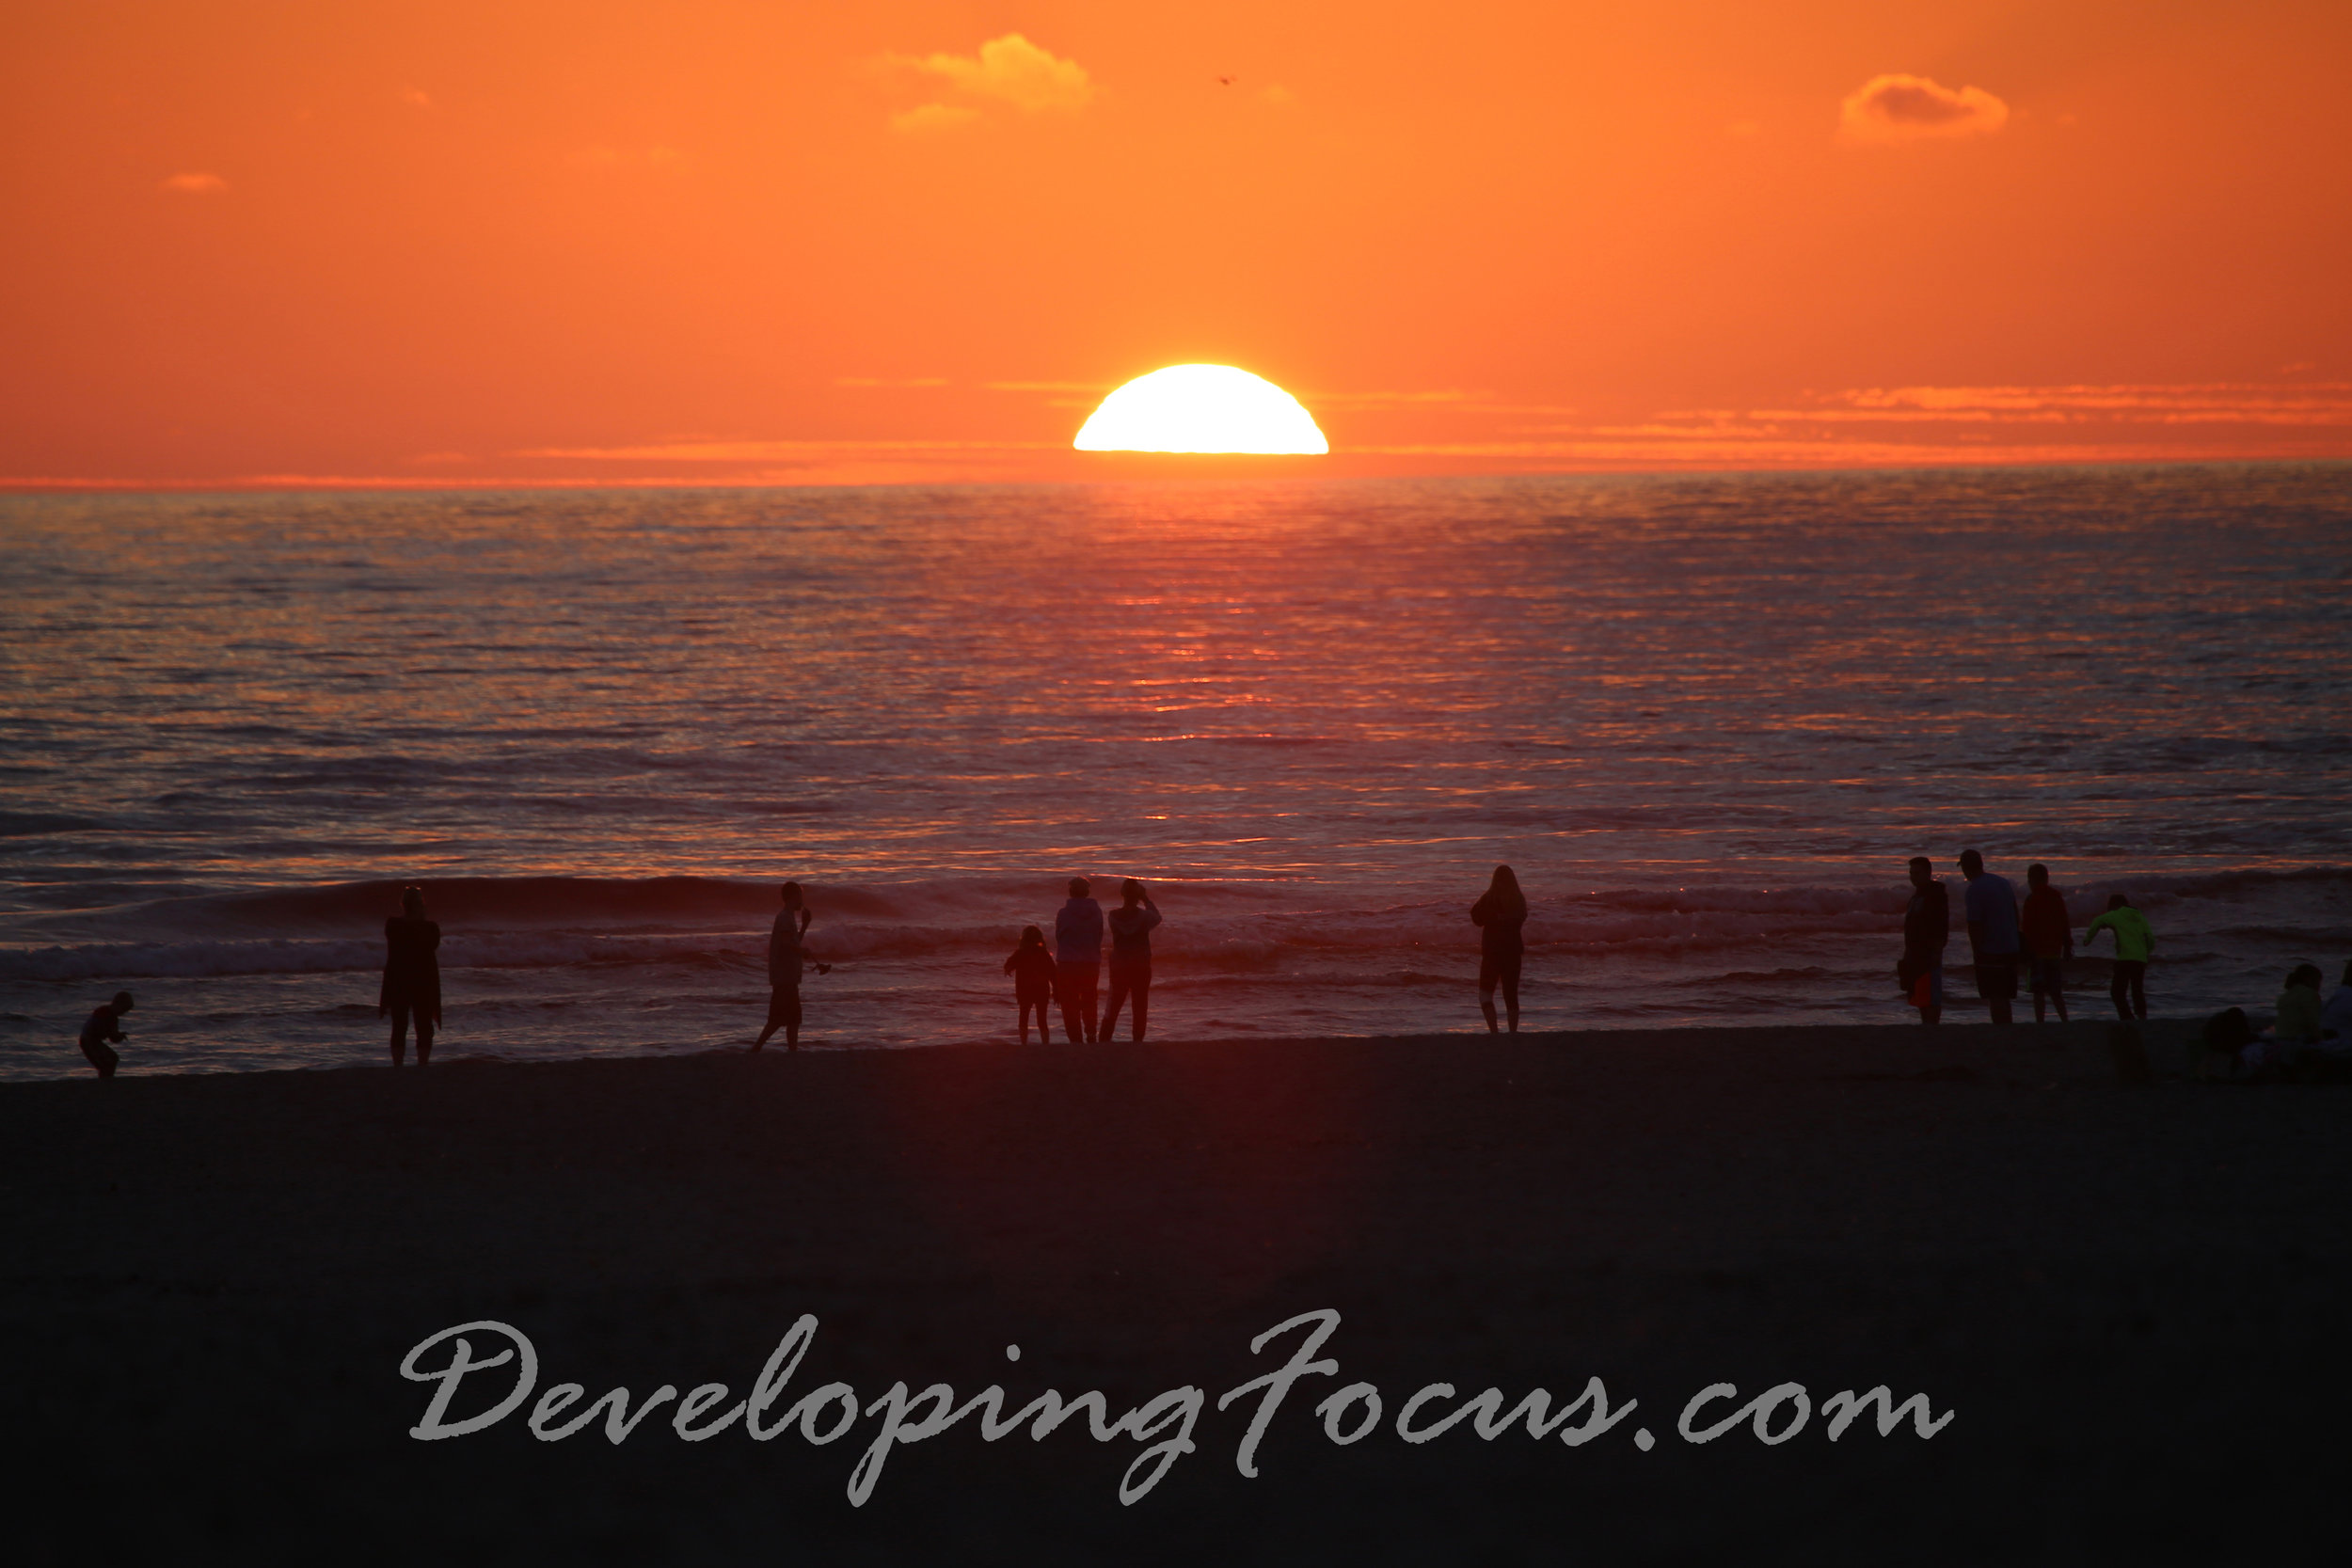 Beach-goers gather on the shoreline to watch the sunset at Sea Side, OR.